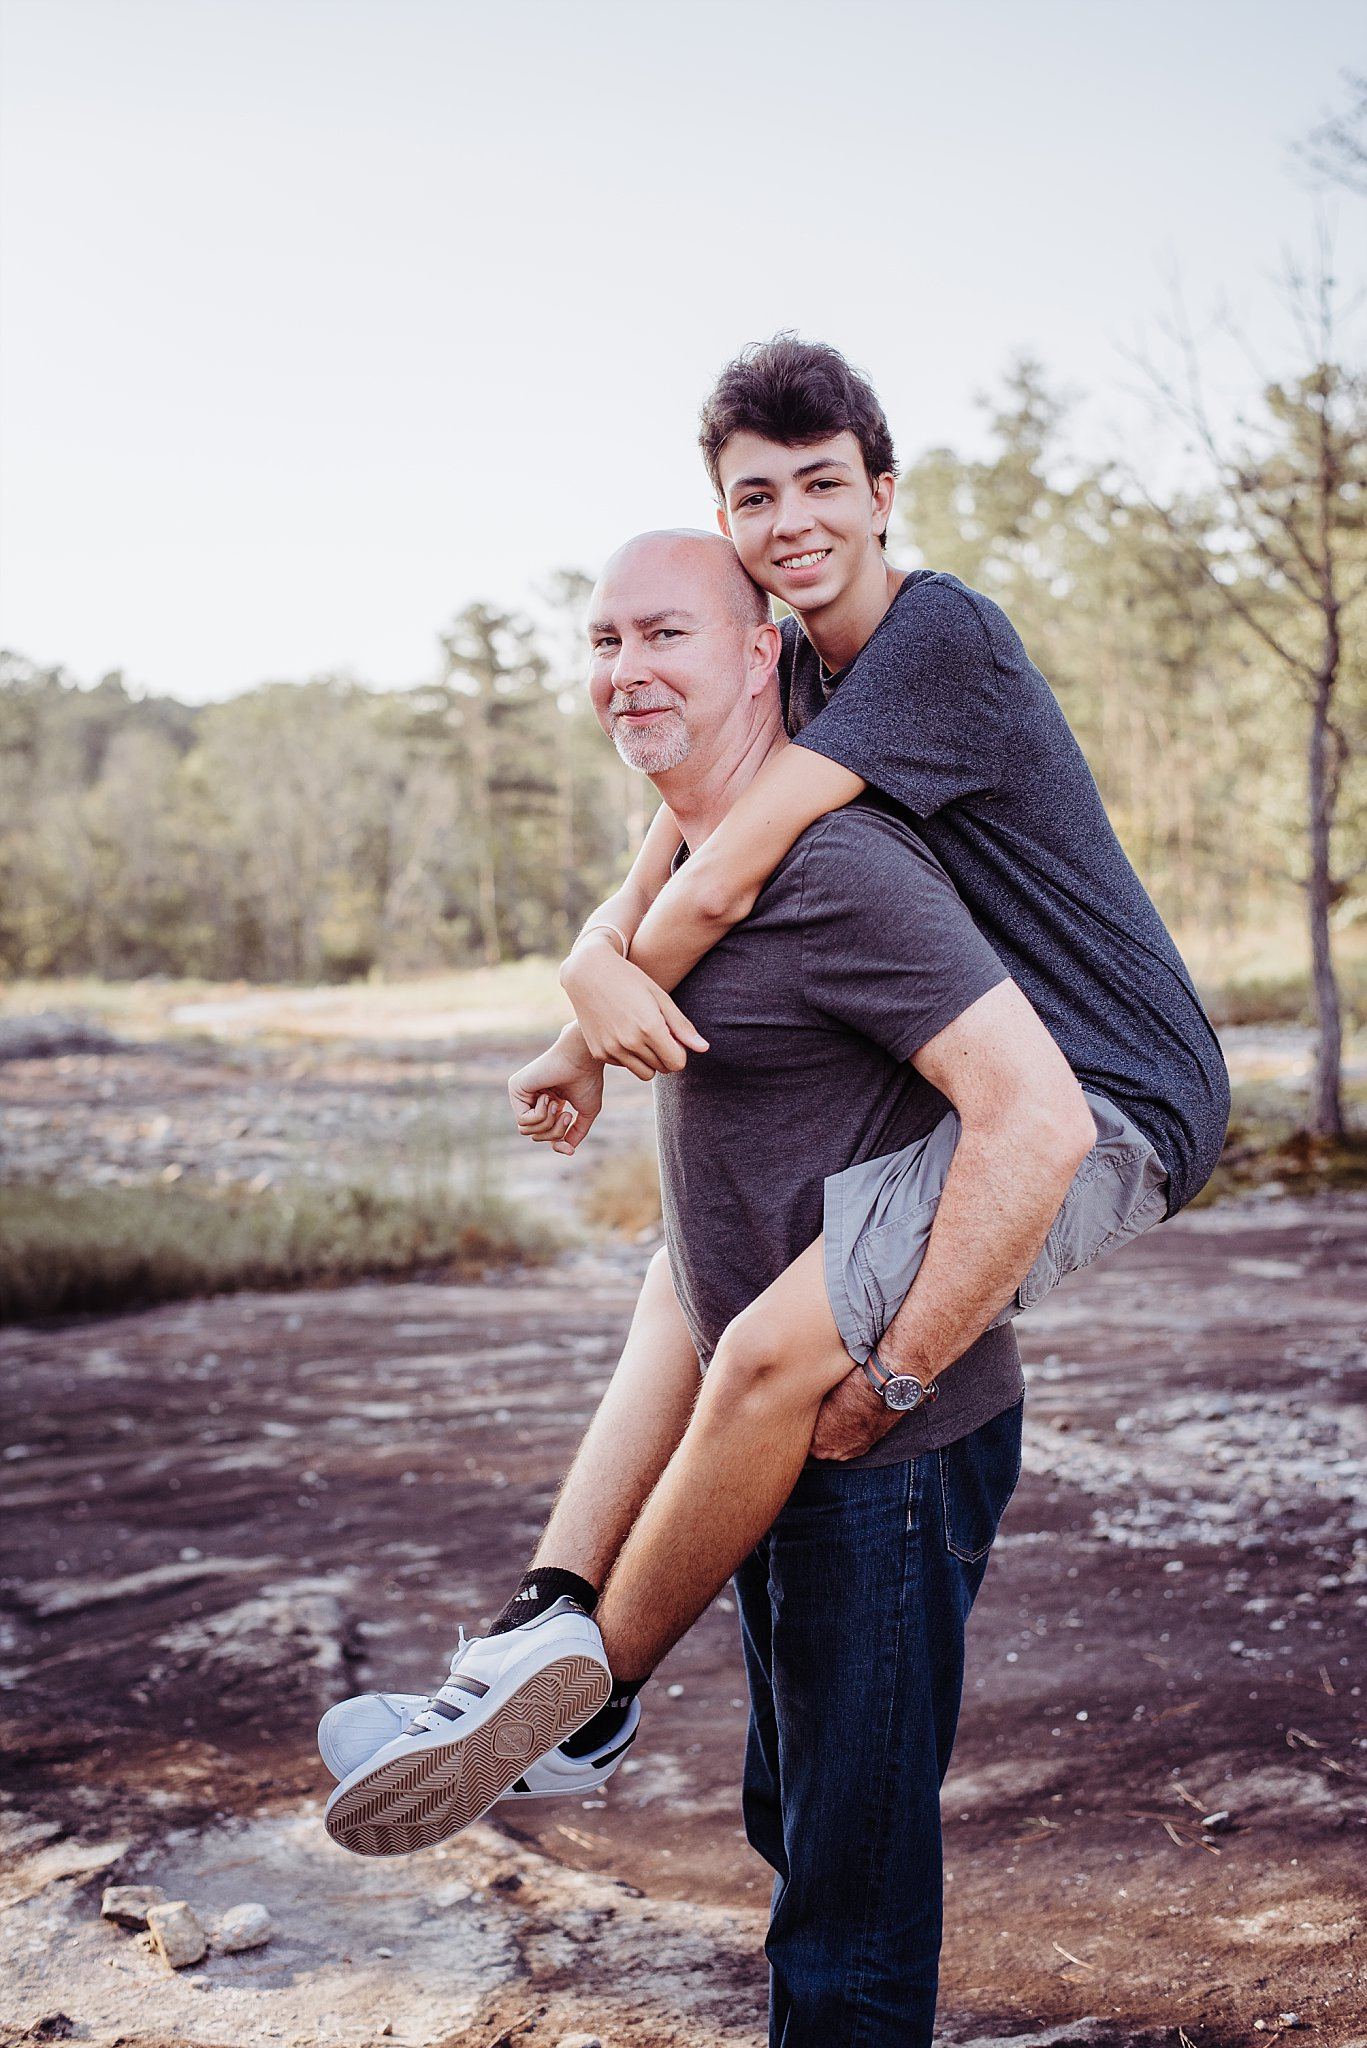 teenage son piggyback with dad Arabia Mountain Atlanta